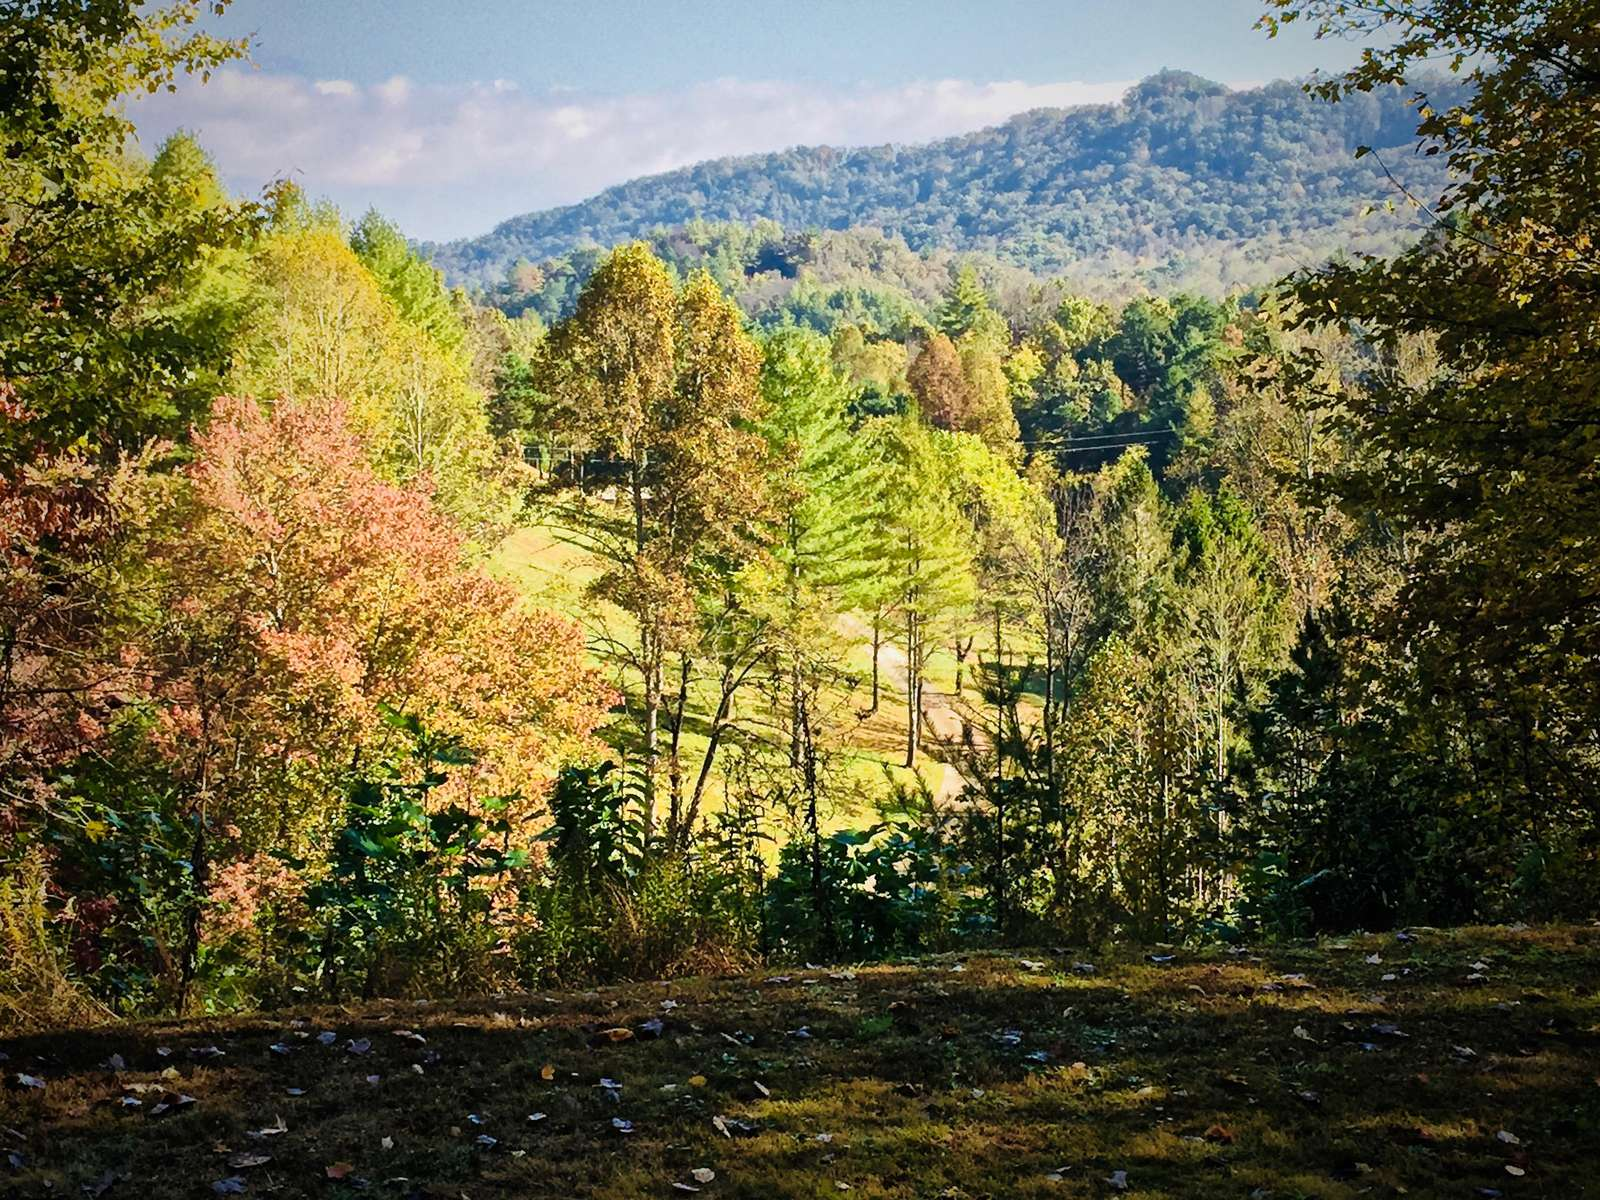 Large Flat Yard, and on the left, a Hiking trail that meanders through the Forest and leads to a Table along side a small Stream...